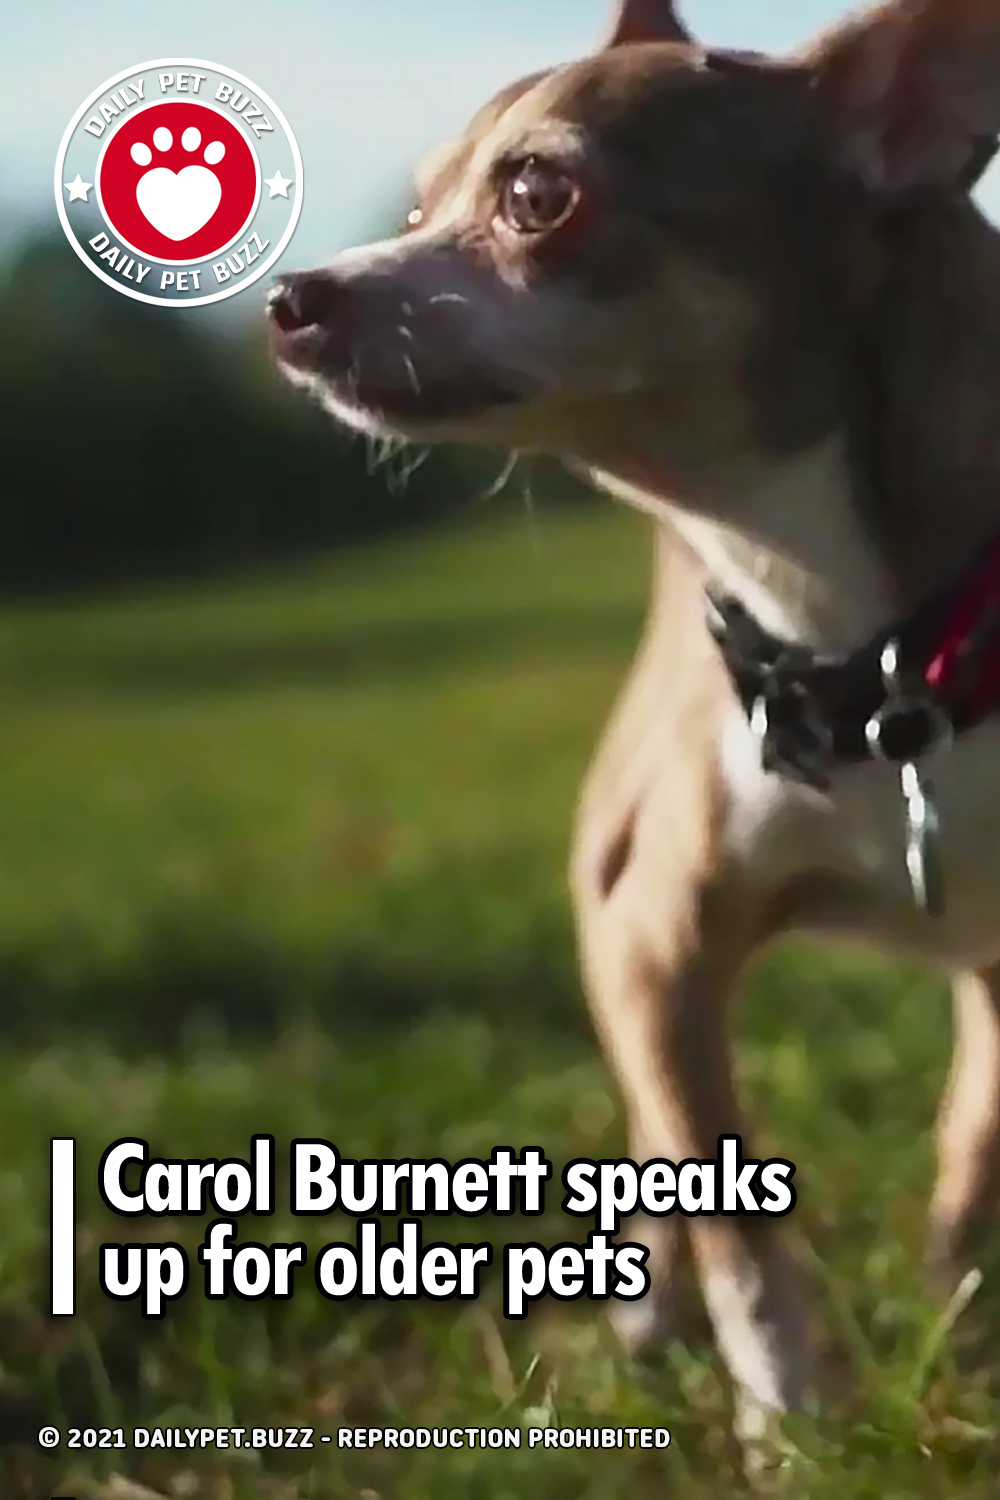 Carol Burnett speaks up for older pets